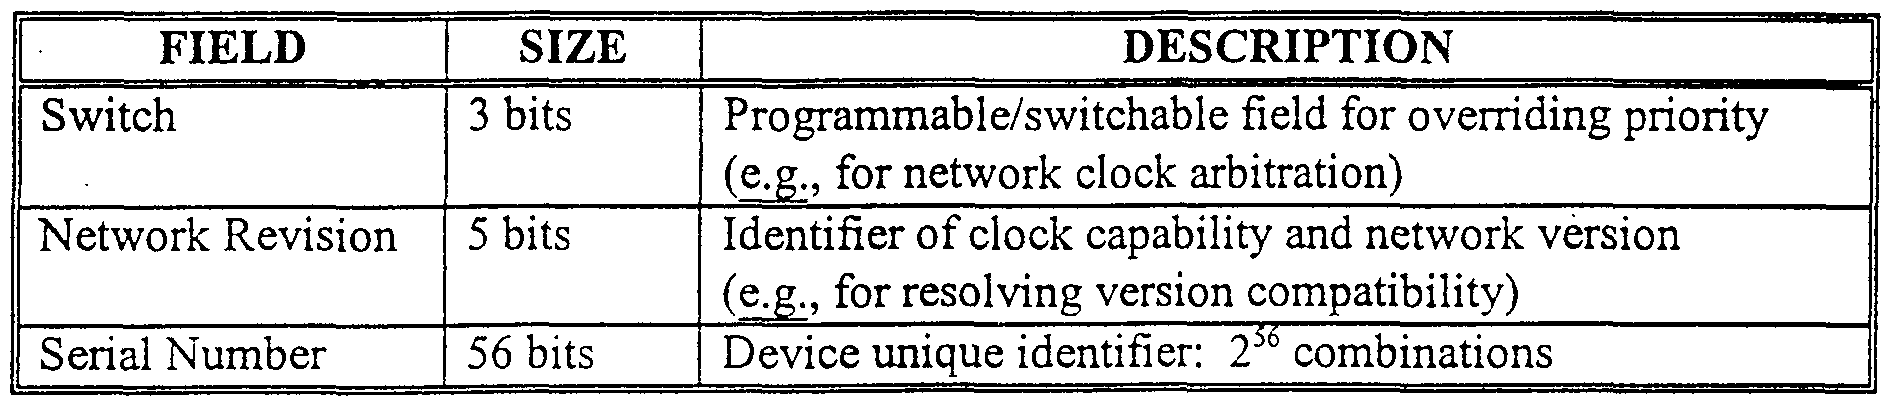 WO1999063698A2 - Synchronous network for digital media